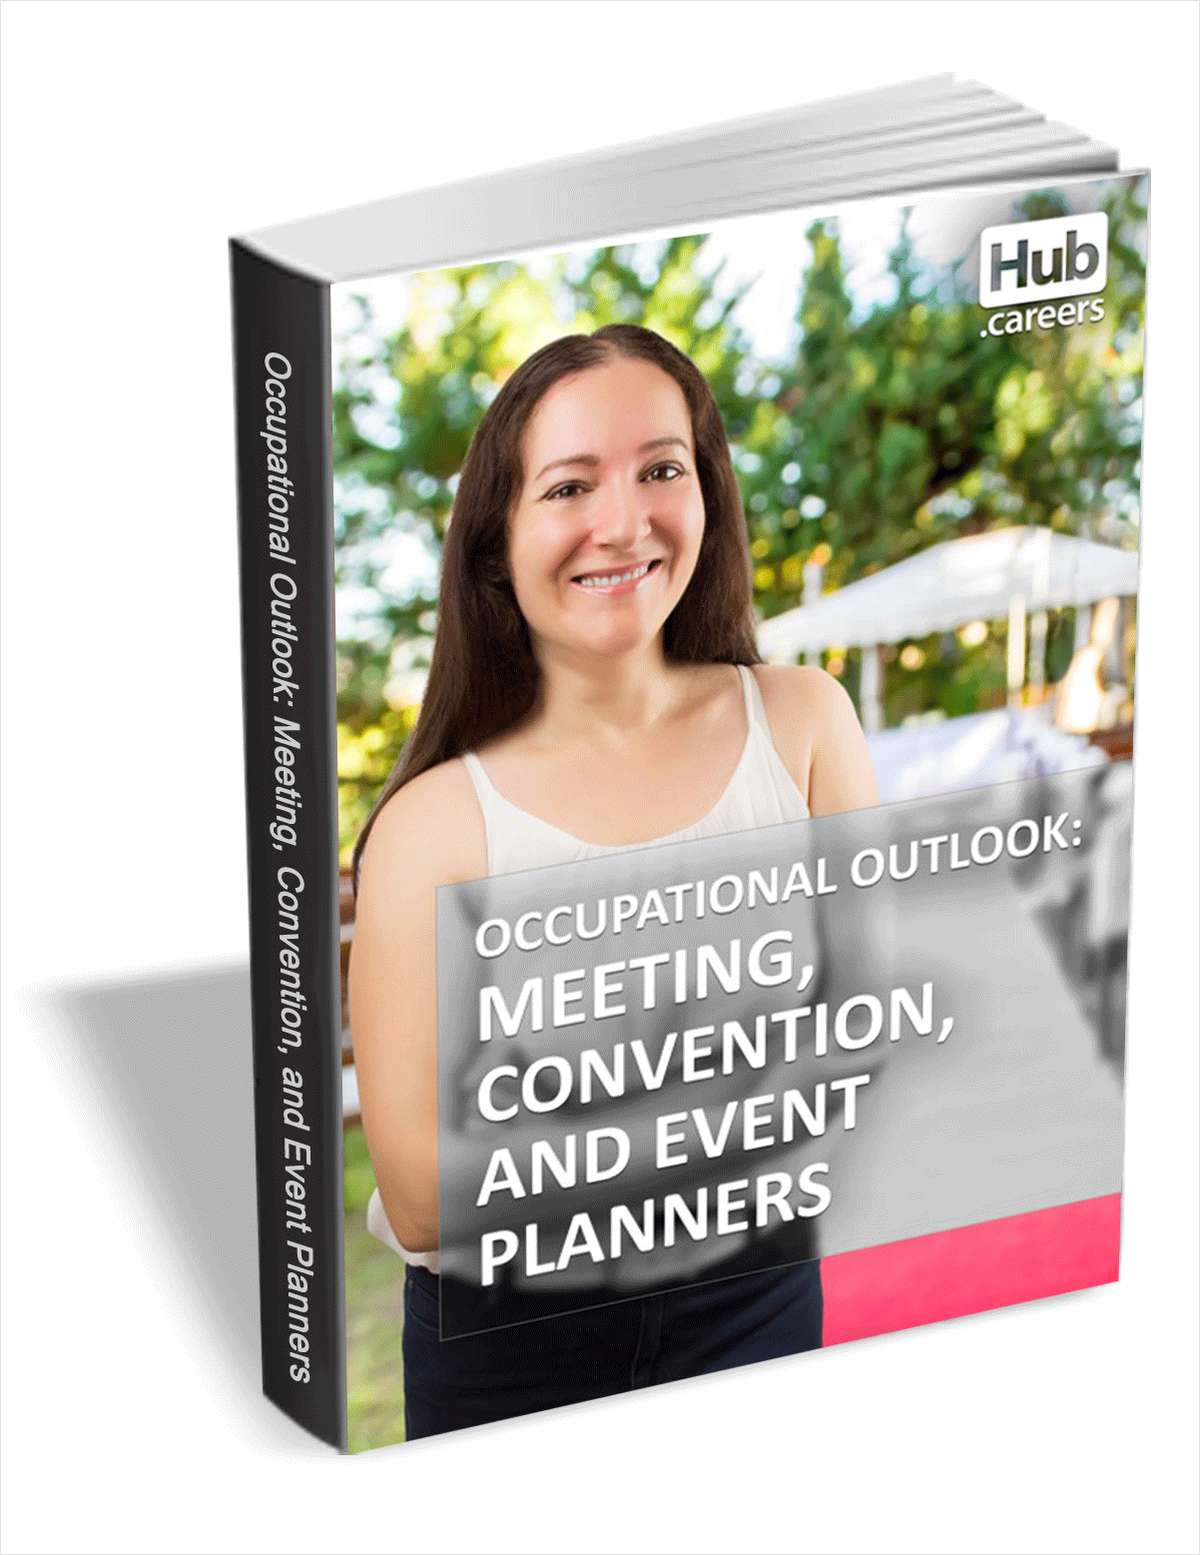 Meeting Convention and Event Planners - Occupational Outlook